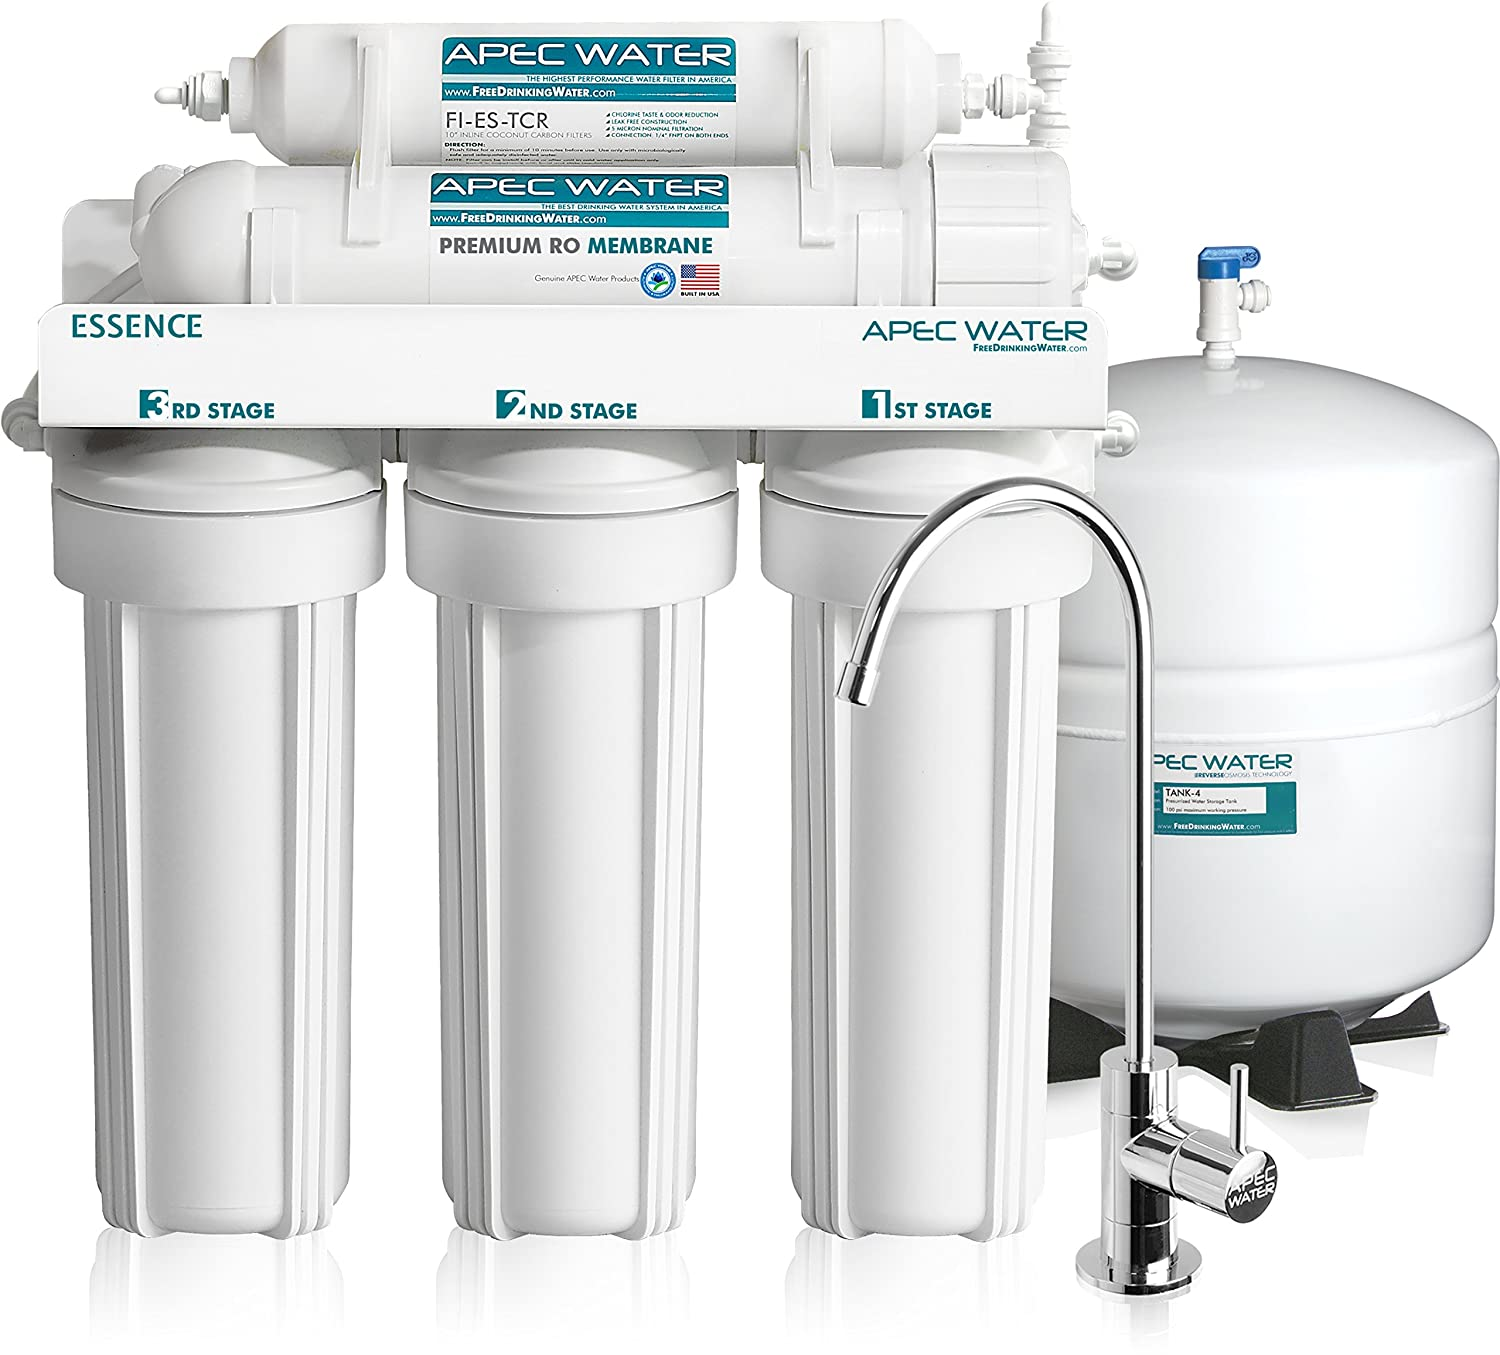 APEC Water ROES-50 Reverse Osmosis Water Filter System Review